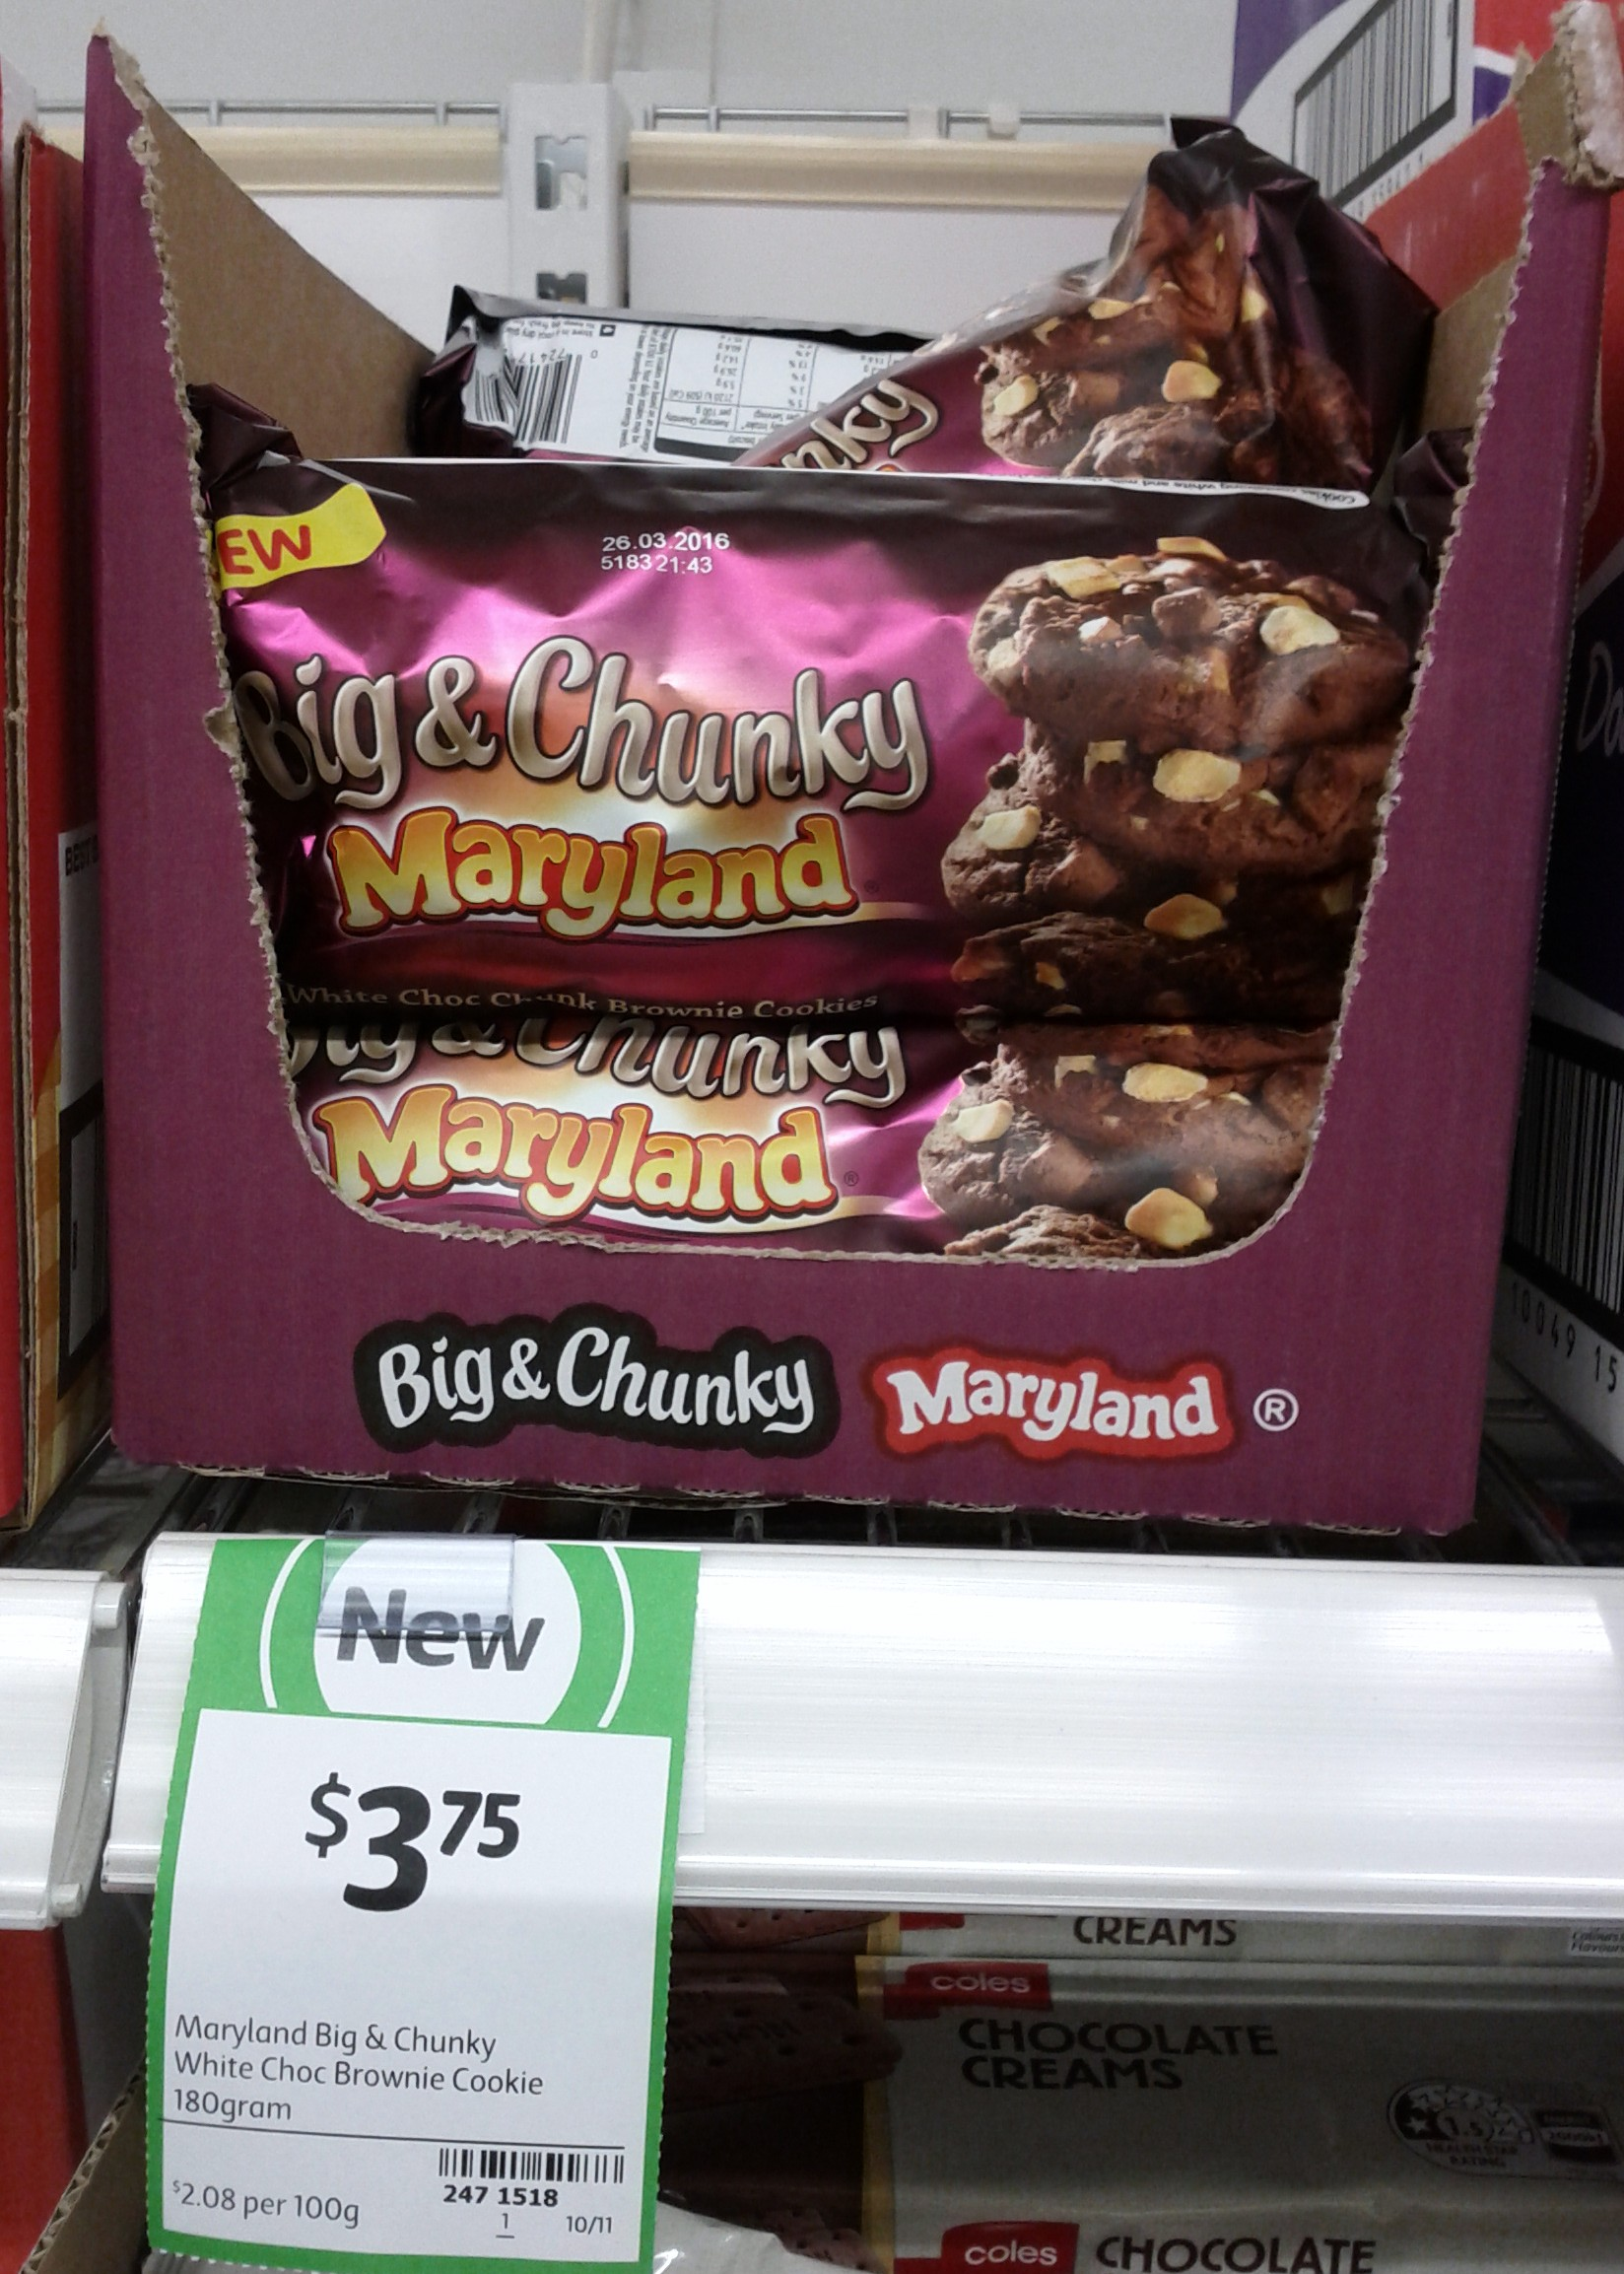 Maryland Big & Chunky 180g White Choc Browine Cookie